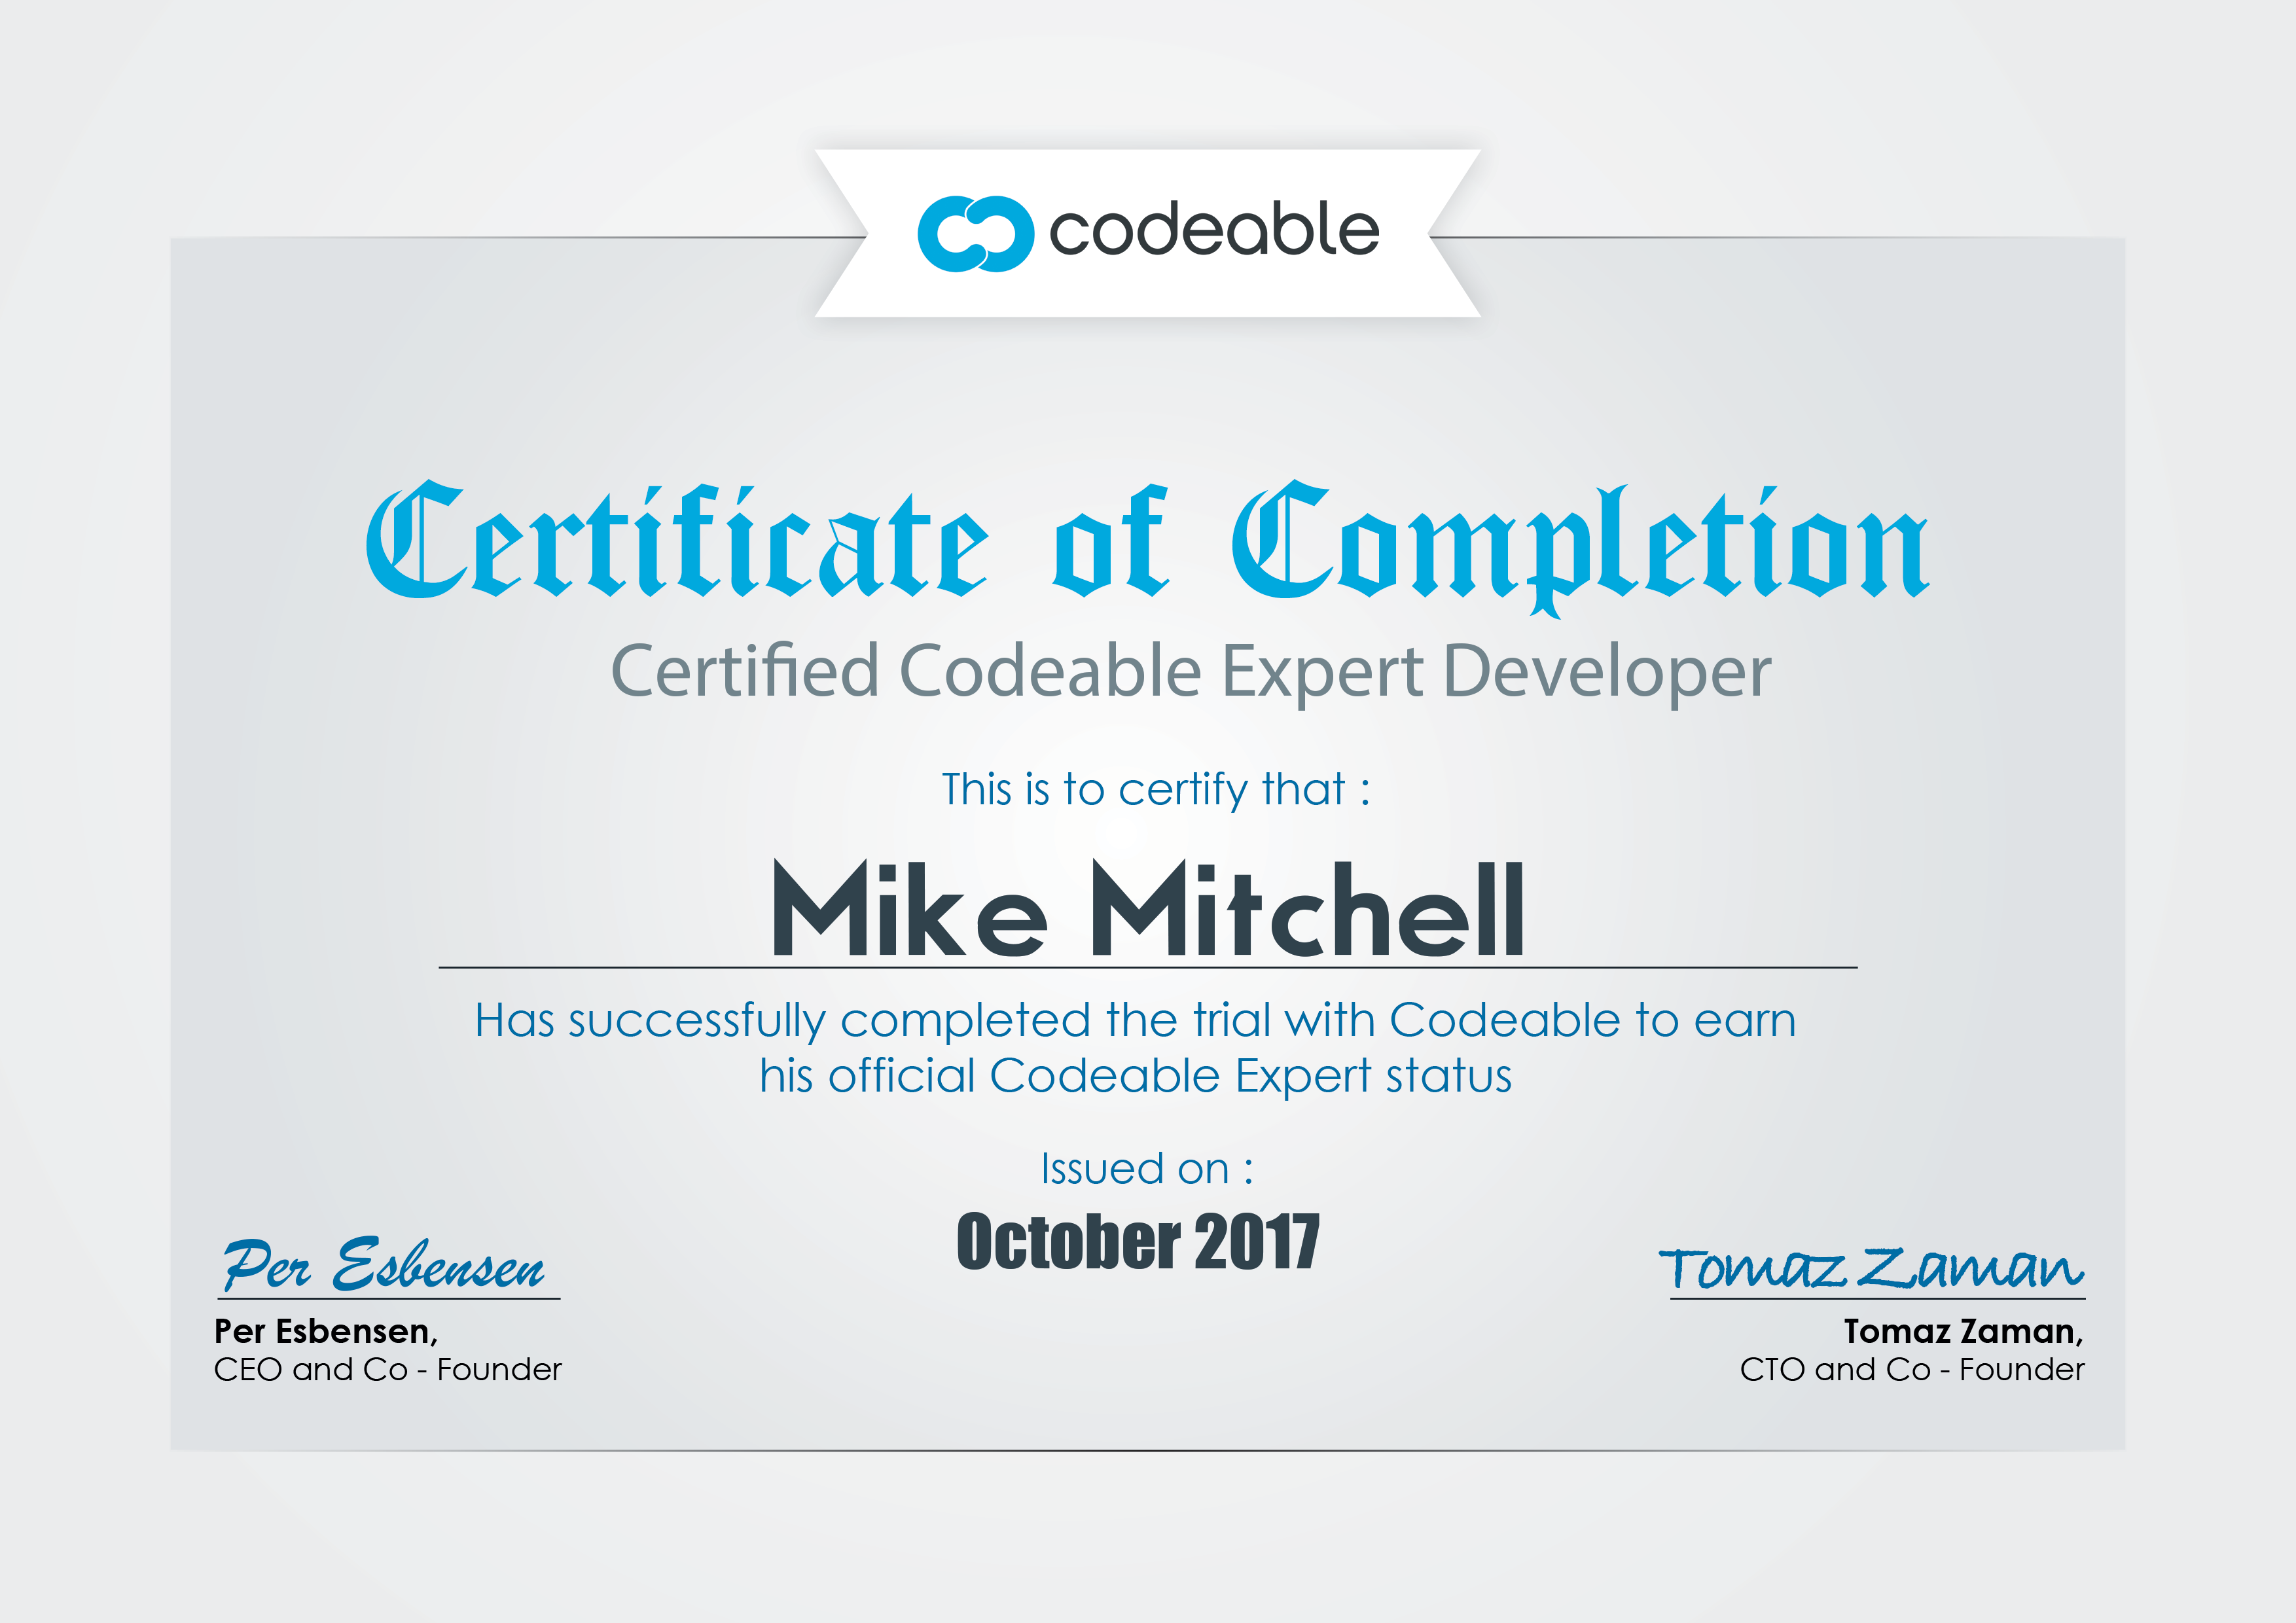 Certifiicate of completion as a Codeable Certified Expert